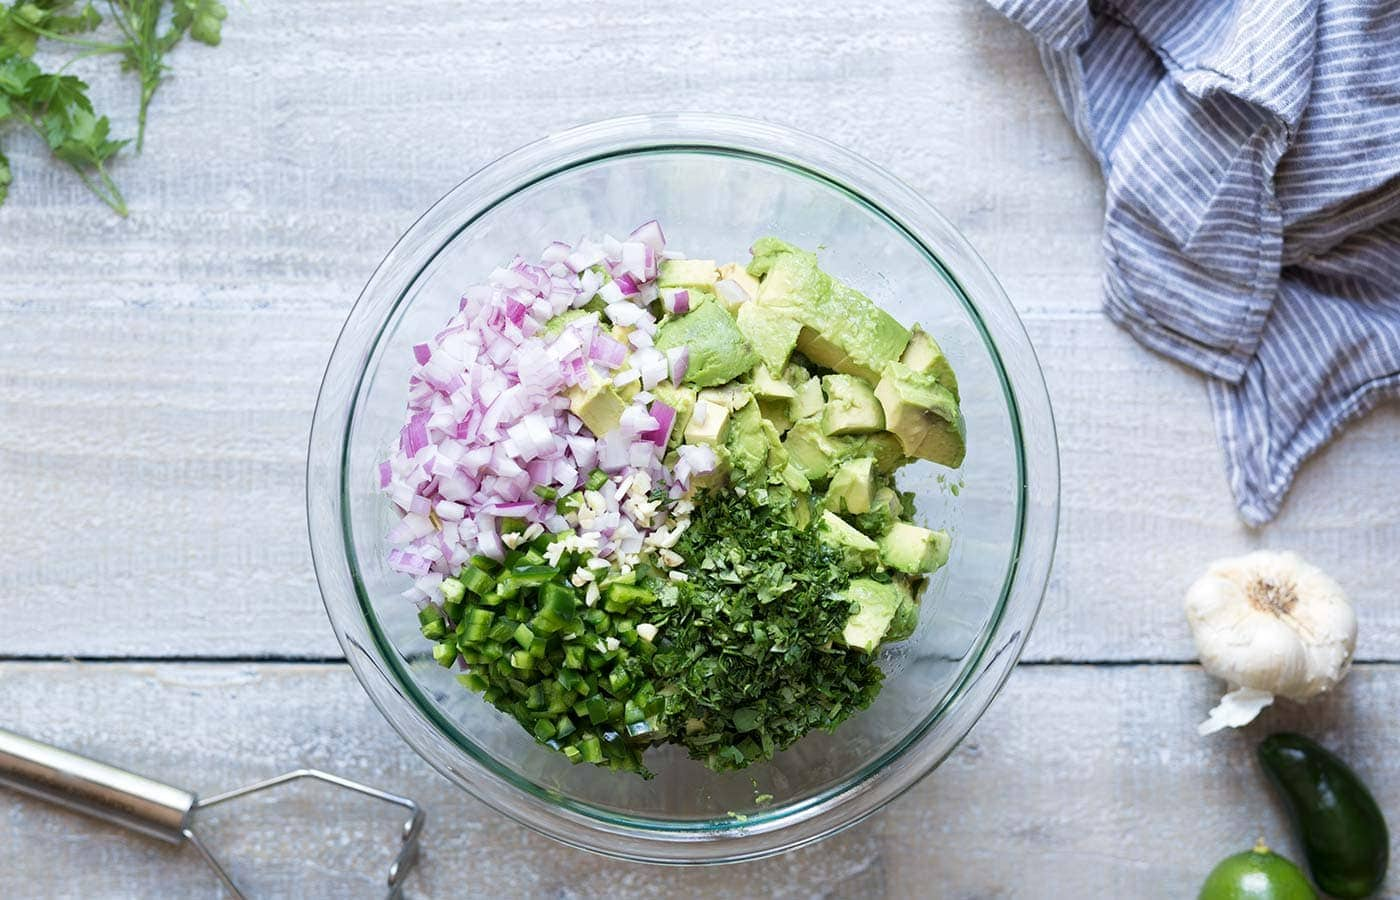 Learn how to make perfect guacamole that will stay fresh and bright green for days! Get the recipe and technique from Savory Simple.